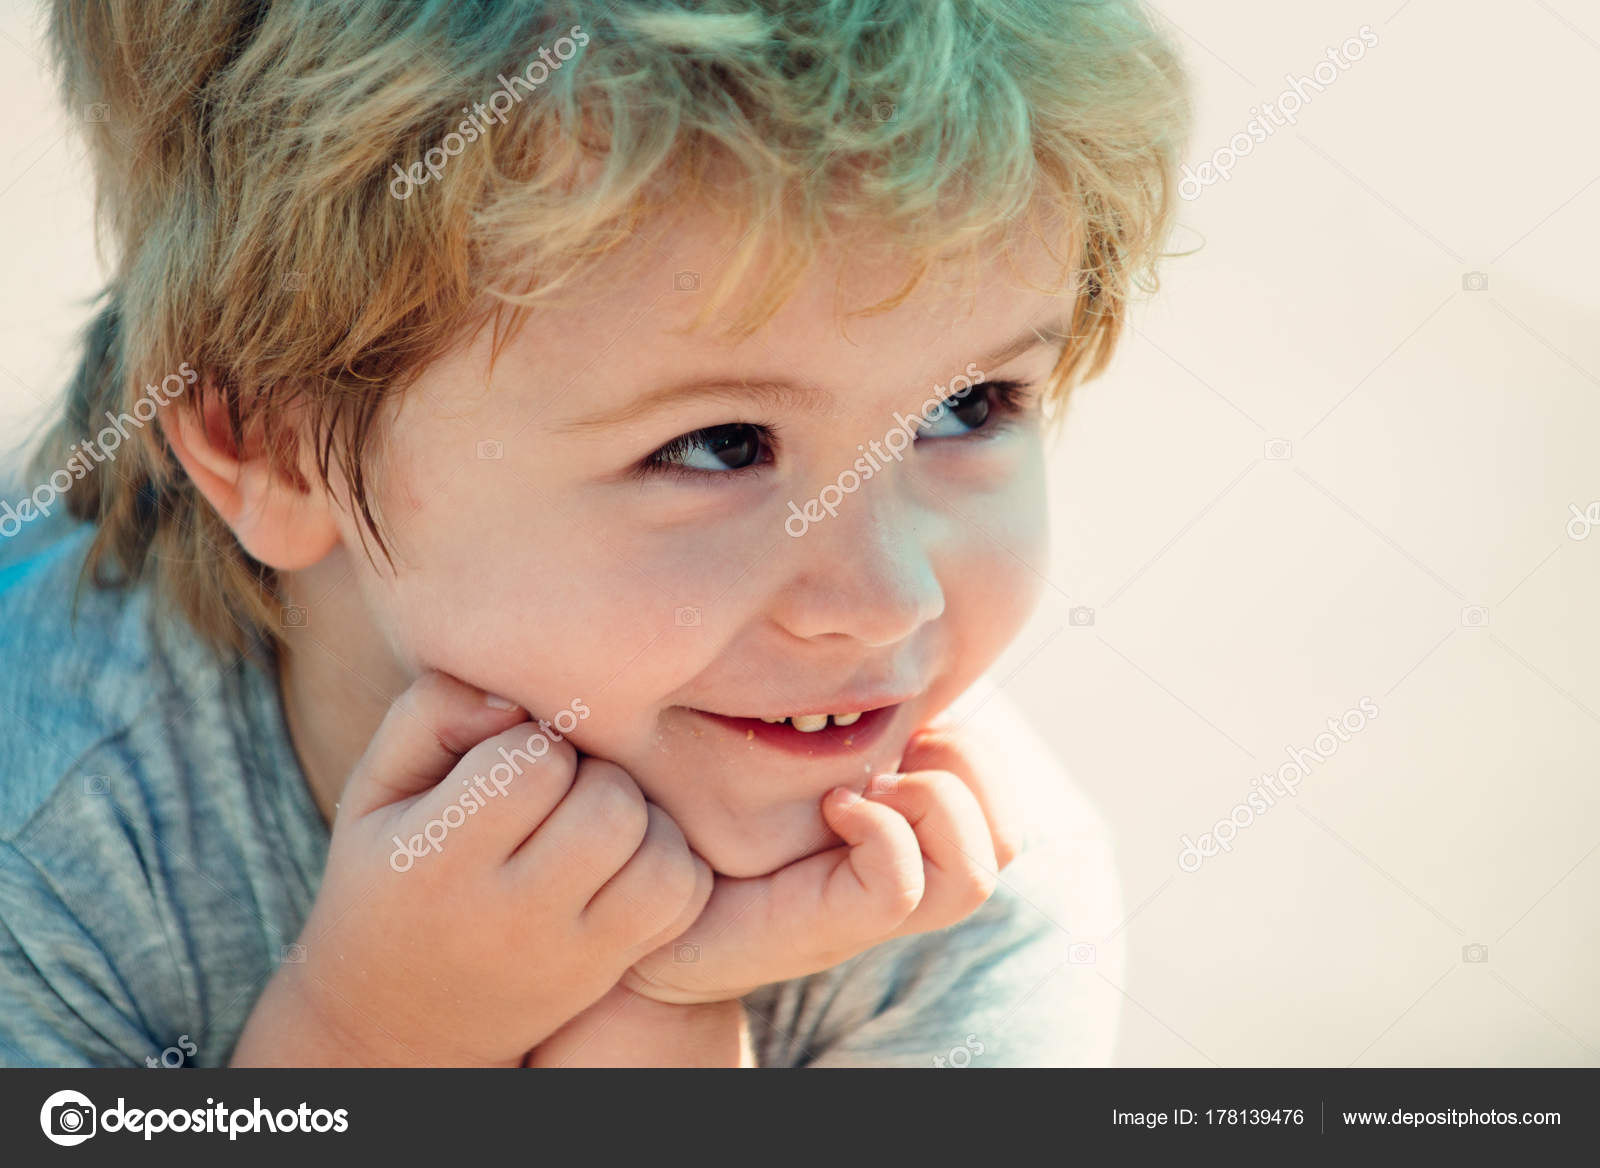 Funny baby portrait, cute boy looking up, beautiful face with white teeth and cheerful